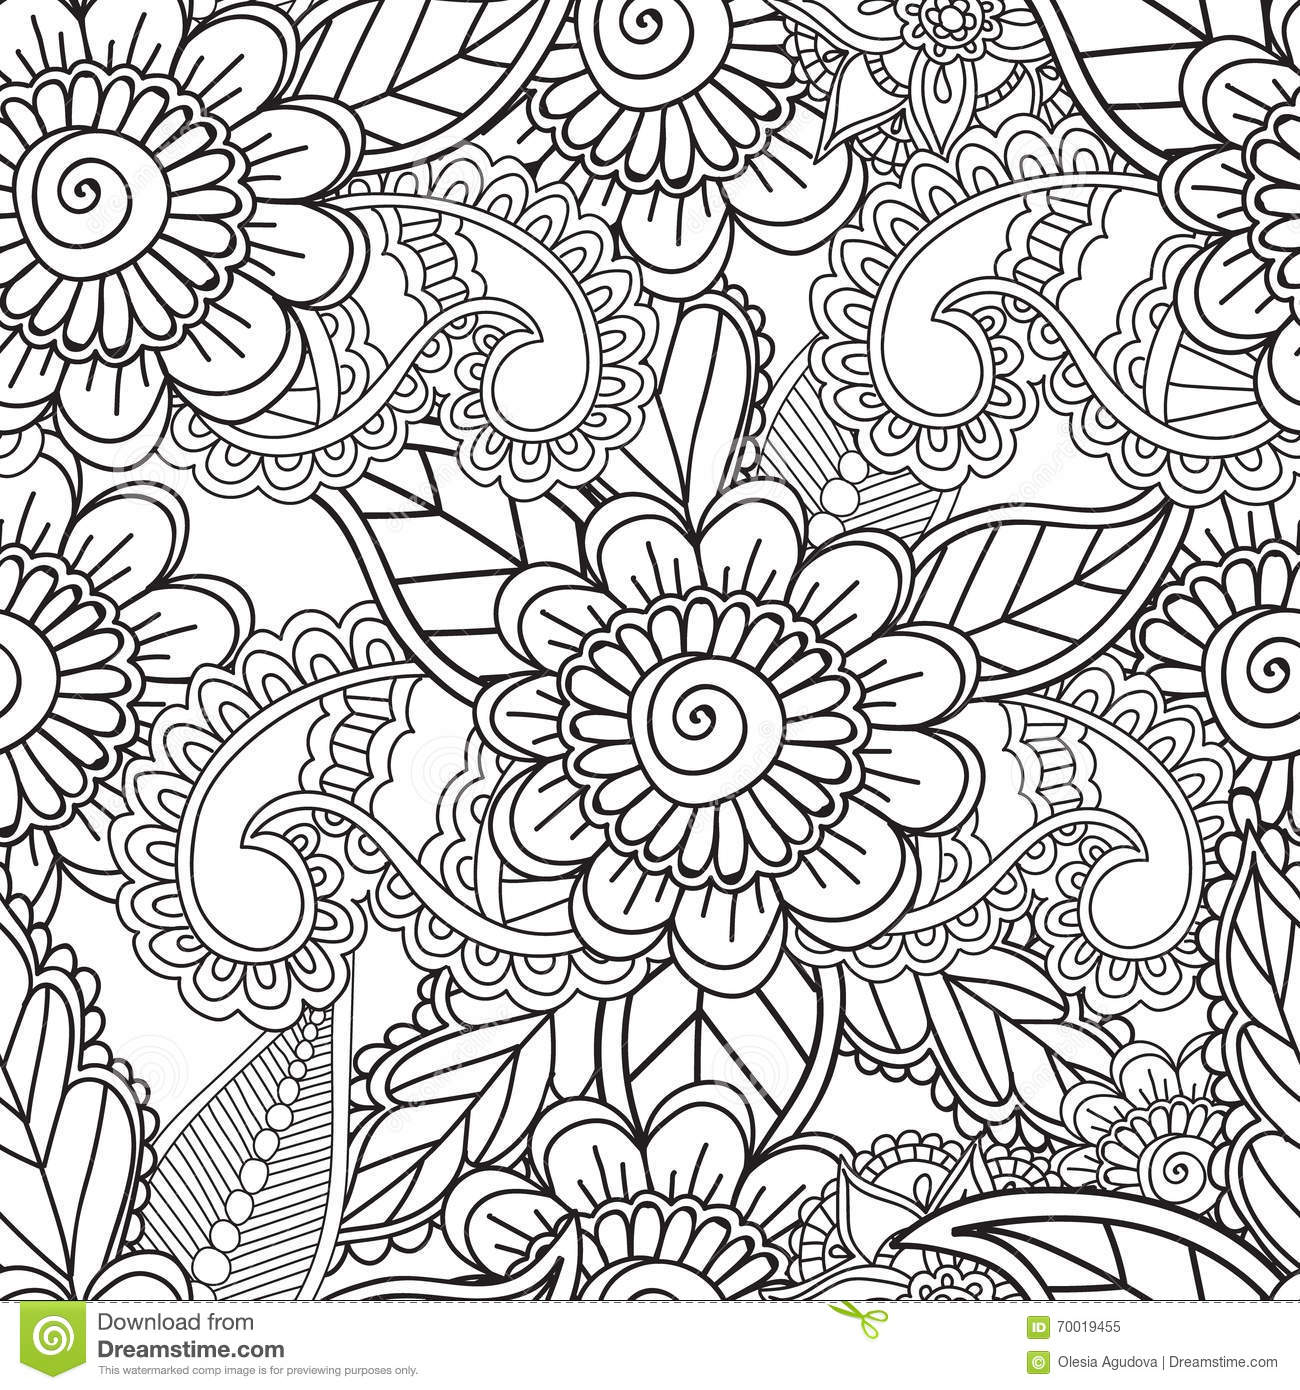 Coloring Pages For Adults. Seamles Henna Mehndi Doodles Abstract ...